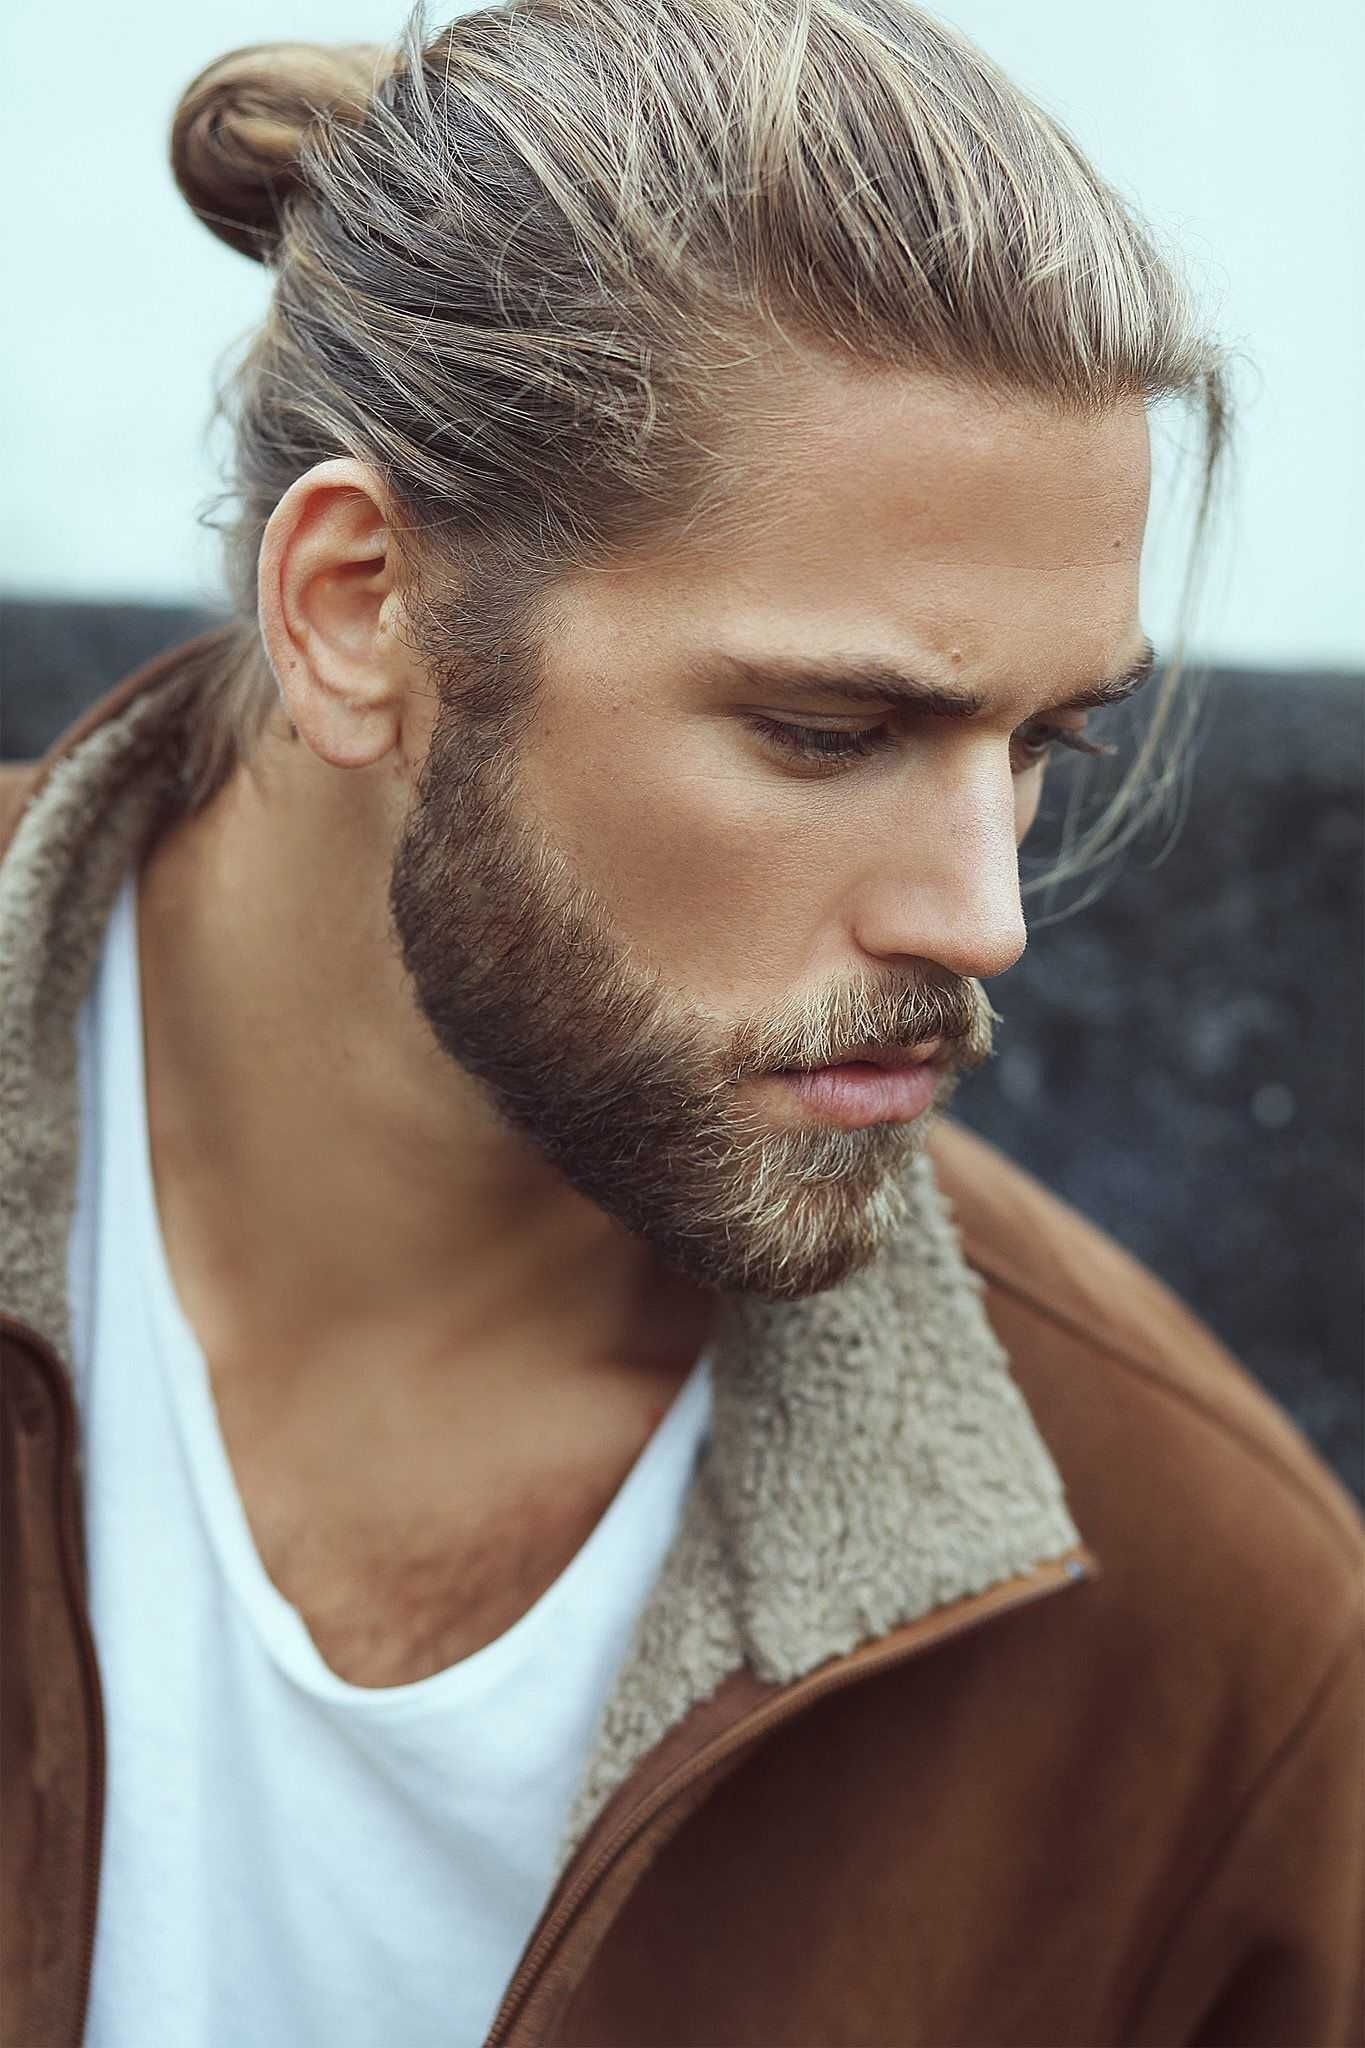 23 Macho Hairstyles For Men With Long Hair Cool Hairstyles For